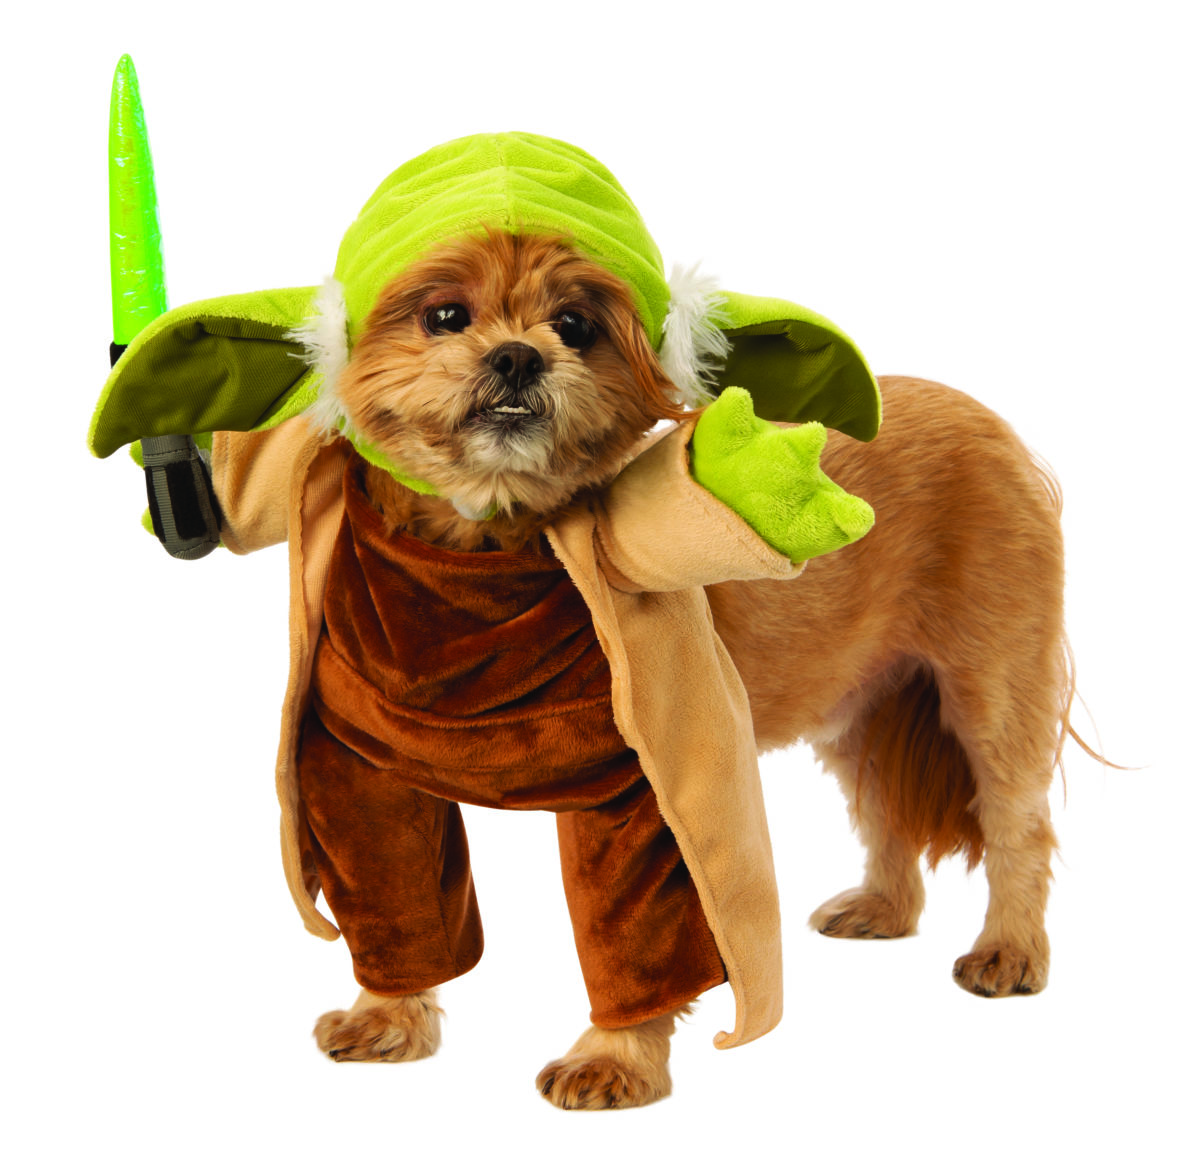 STAR WARS WALKING YODA COSTUME FOR DOGS / CATS